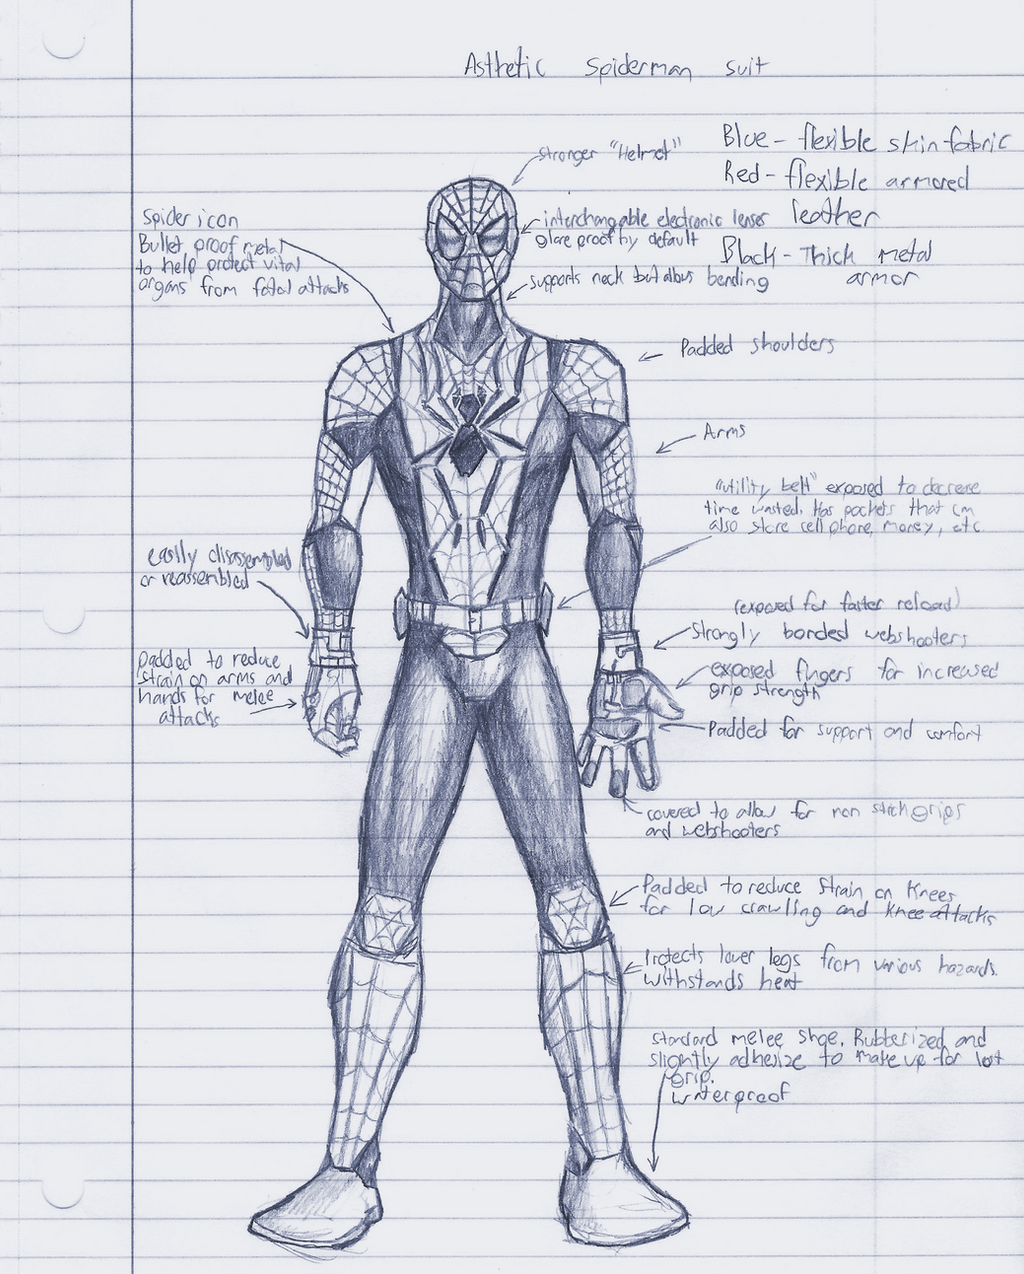 Functional spider man suit design by hyperchaotix on deviantart functional spider man suit design by hyperchaotix malvernweather Choice Image